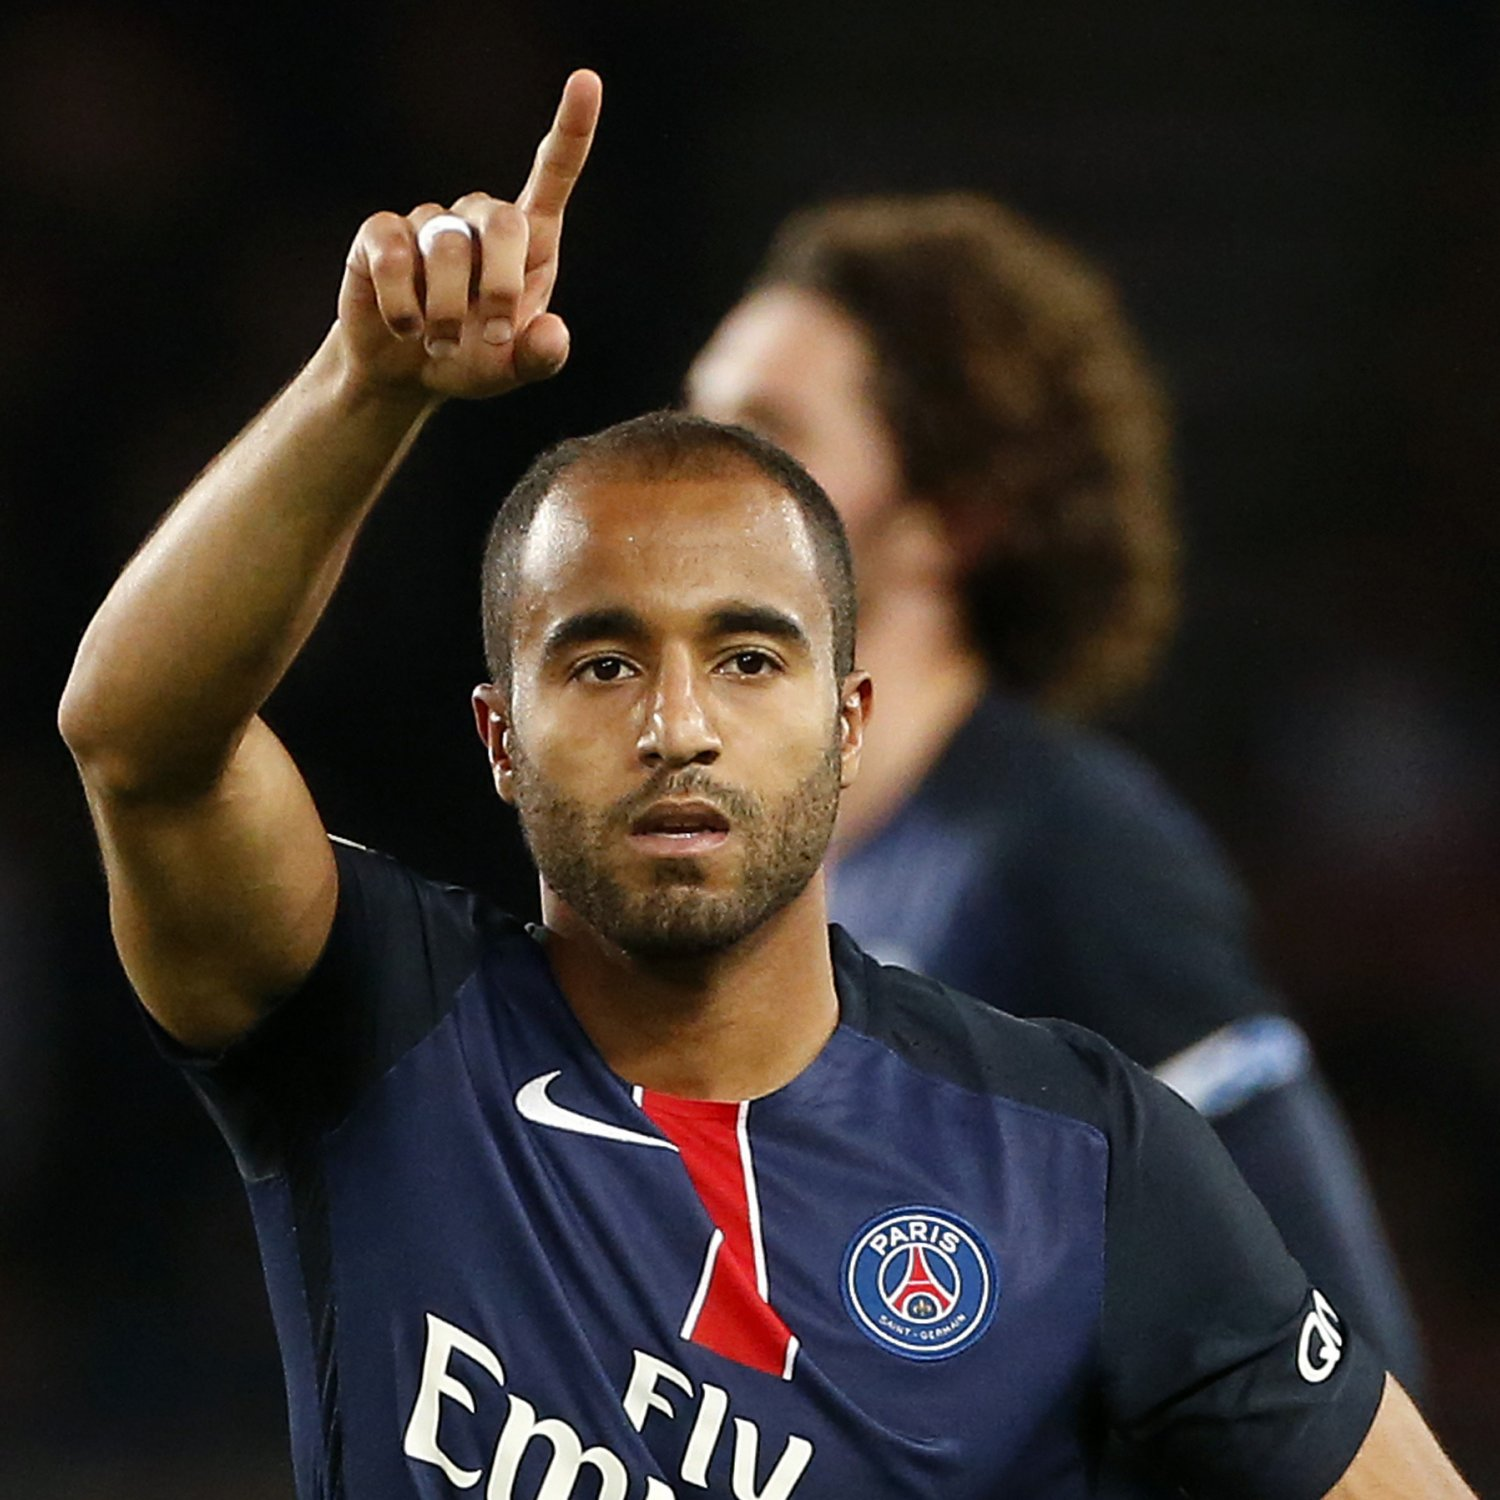 Manchester United Transfer News: Latest On Lucas Moura And